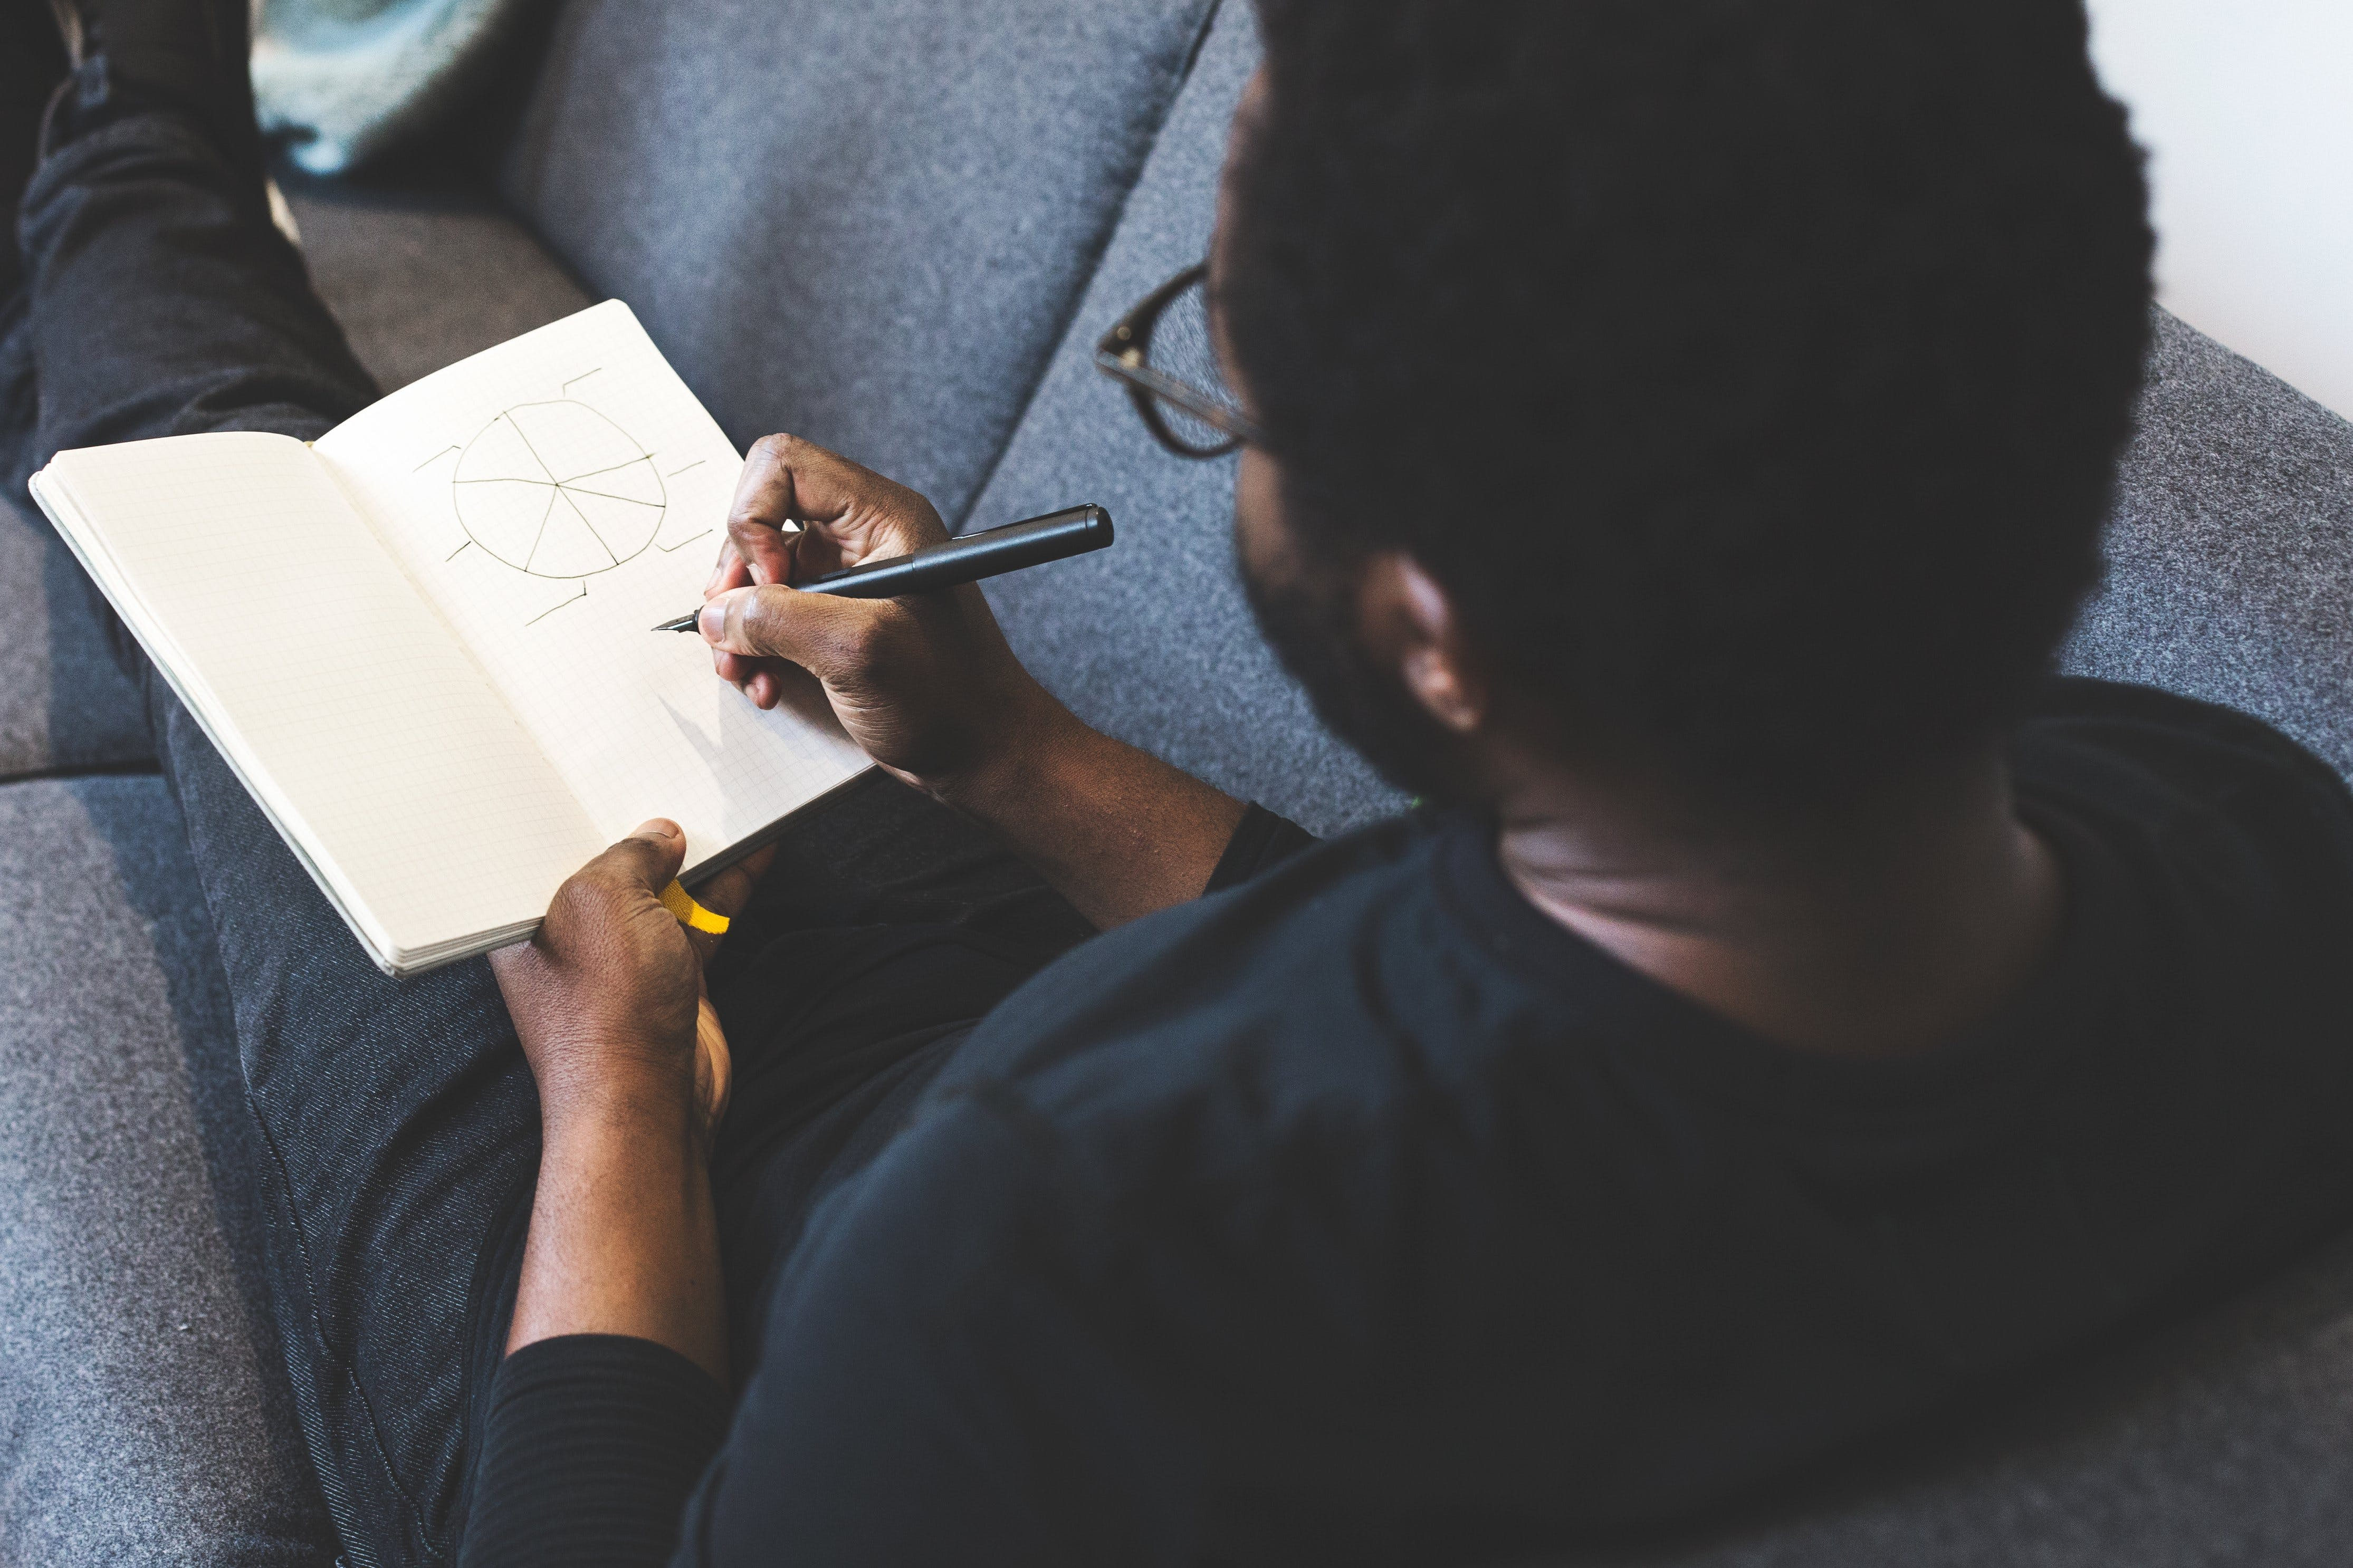 Man Sitting on Gray Couch Writing on White Book